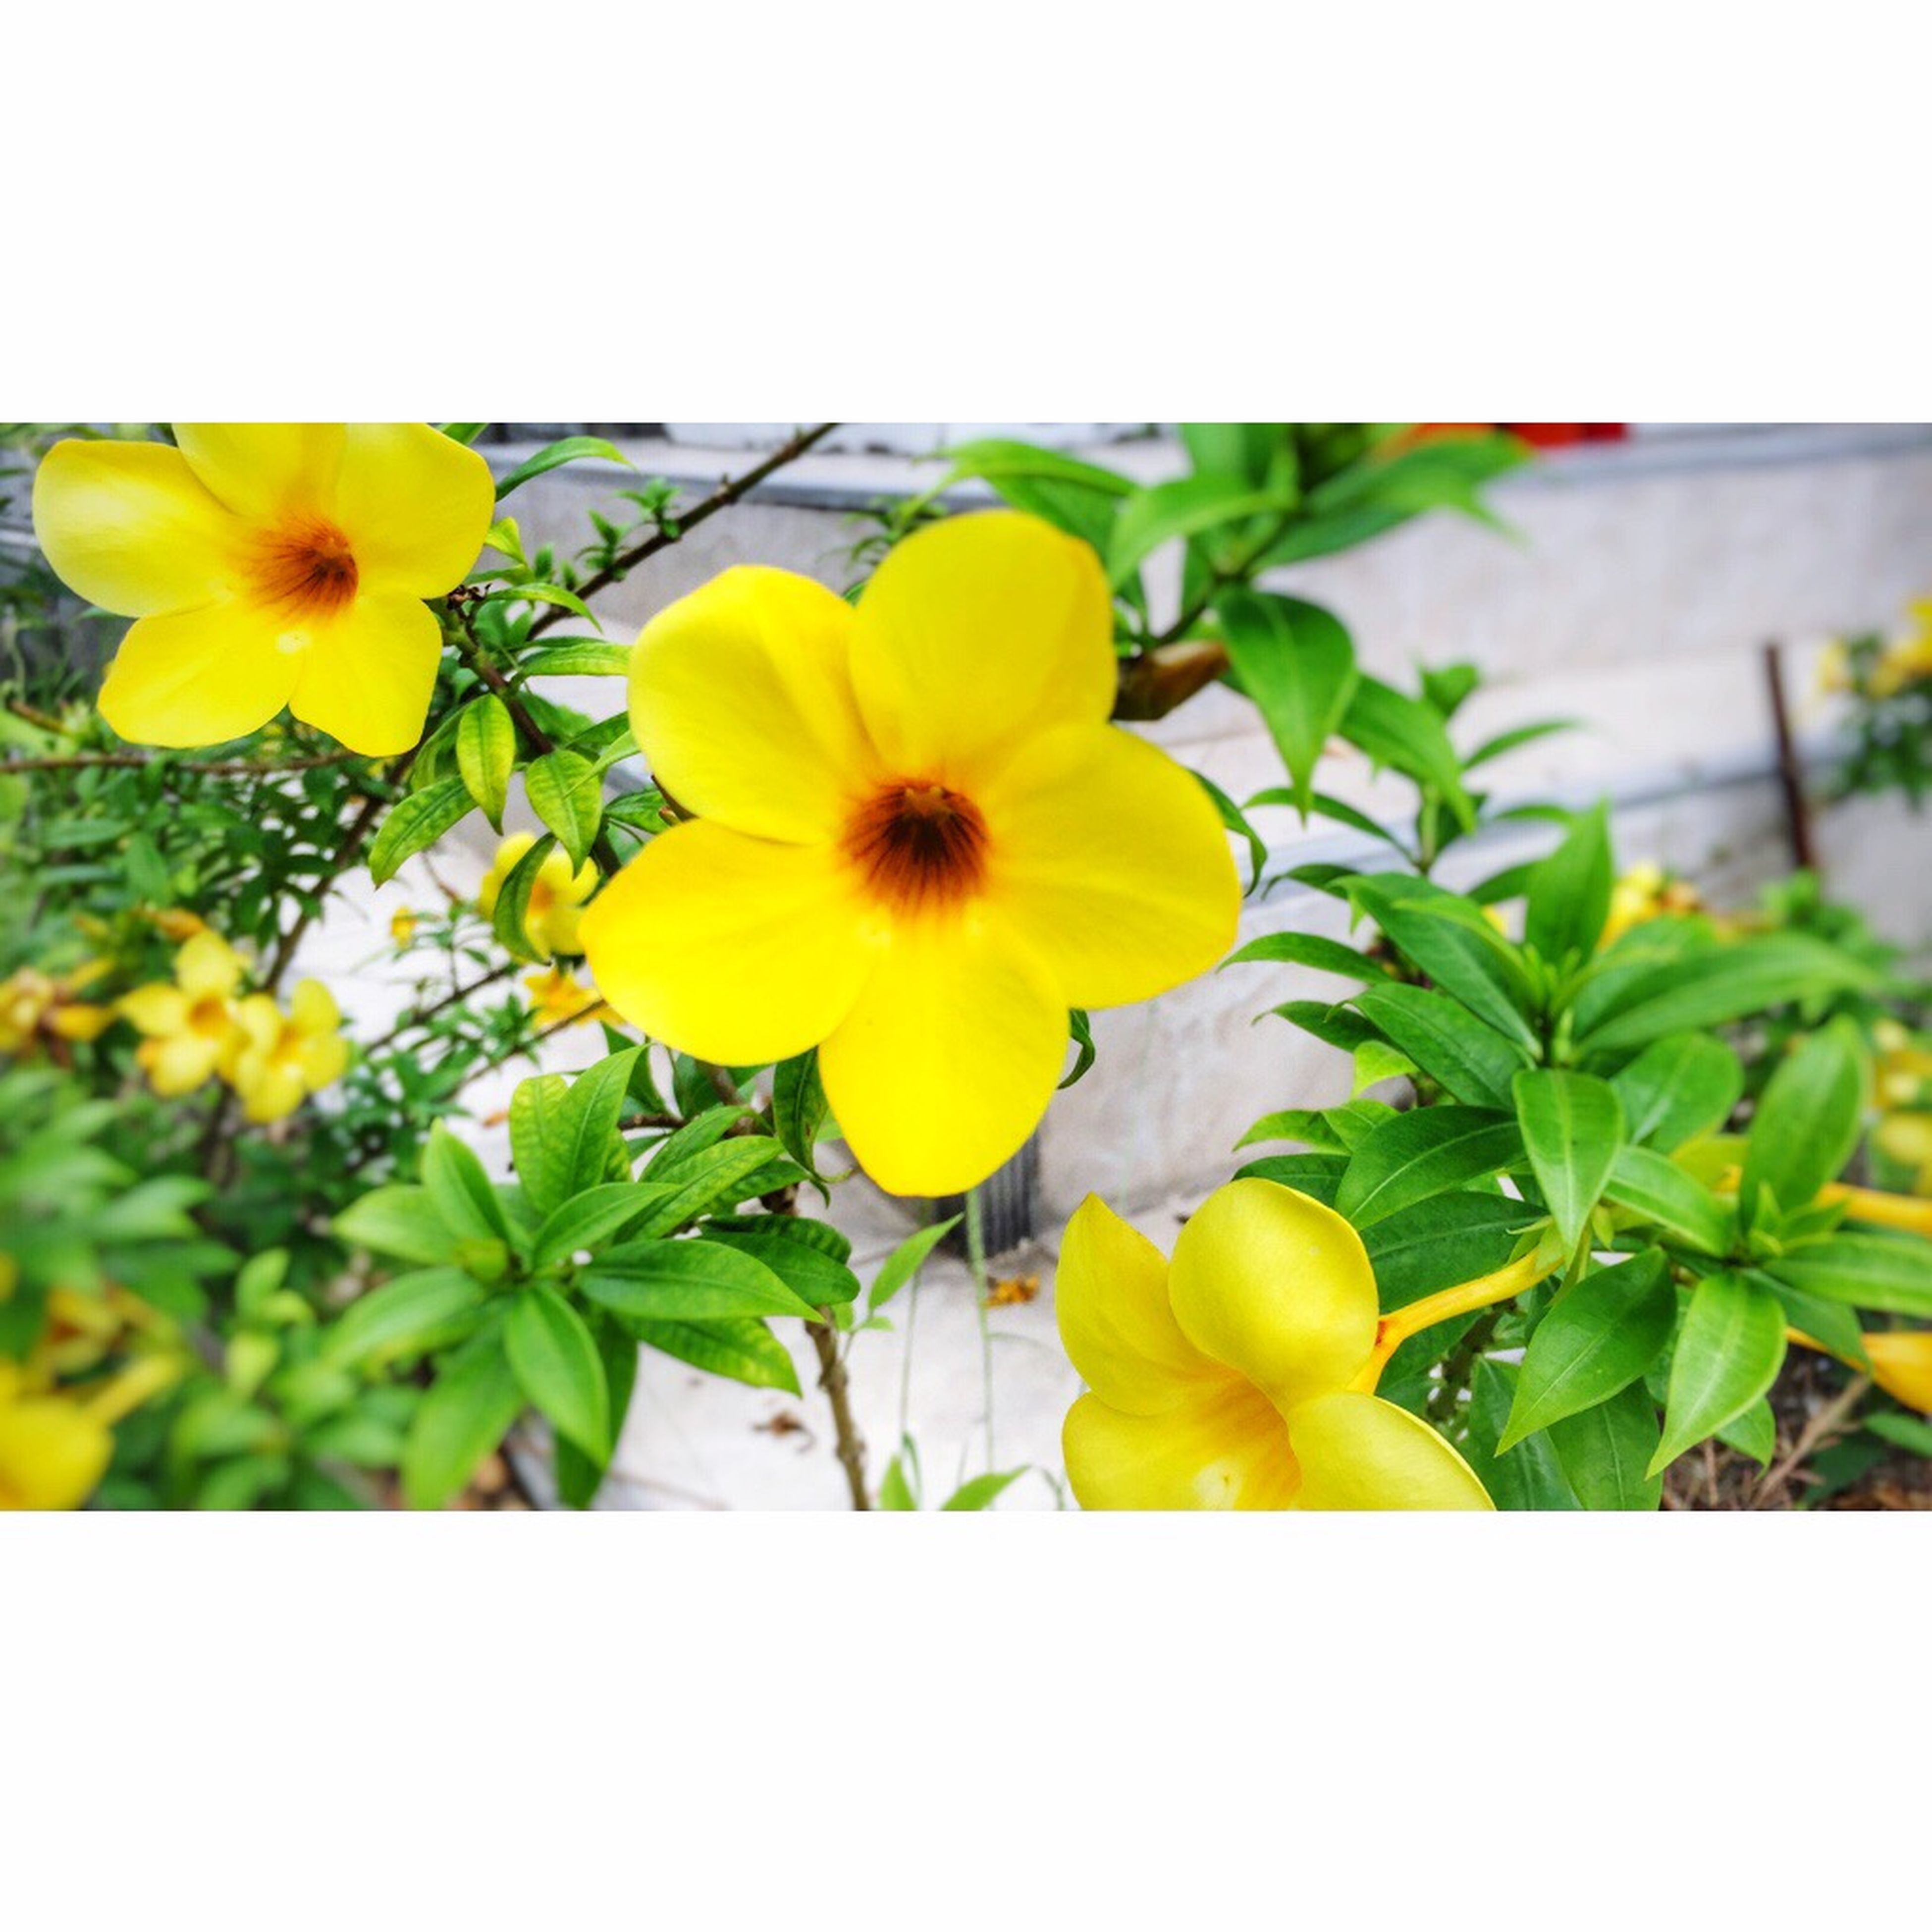 flower, yellow, freshness, fragility, petal, flower head, growth, plant, beauty in nature, leaf, blooming, nature, close-up, green color, focus on foreground, stem, day, in bloom, outdoors, no people, botany, blossom, green, growing, selective focus